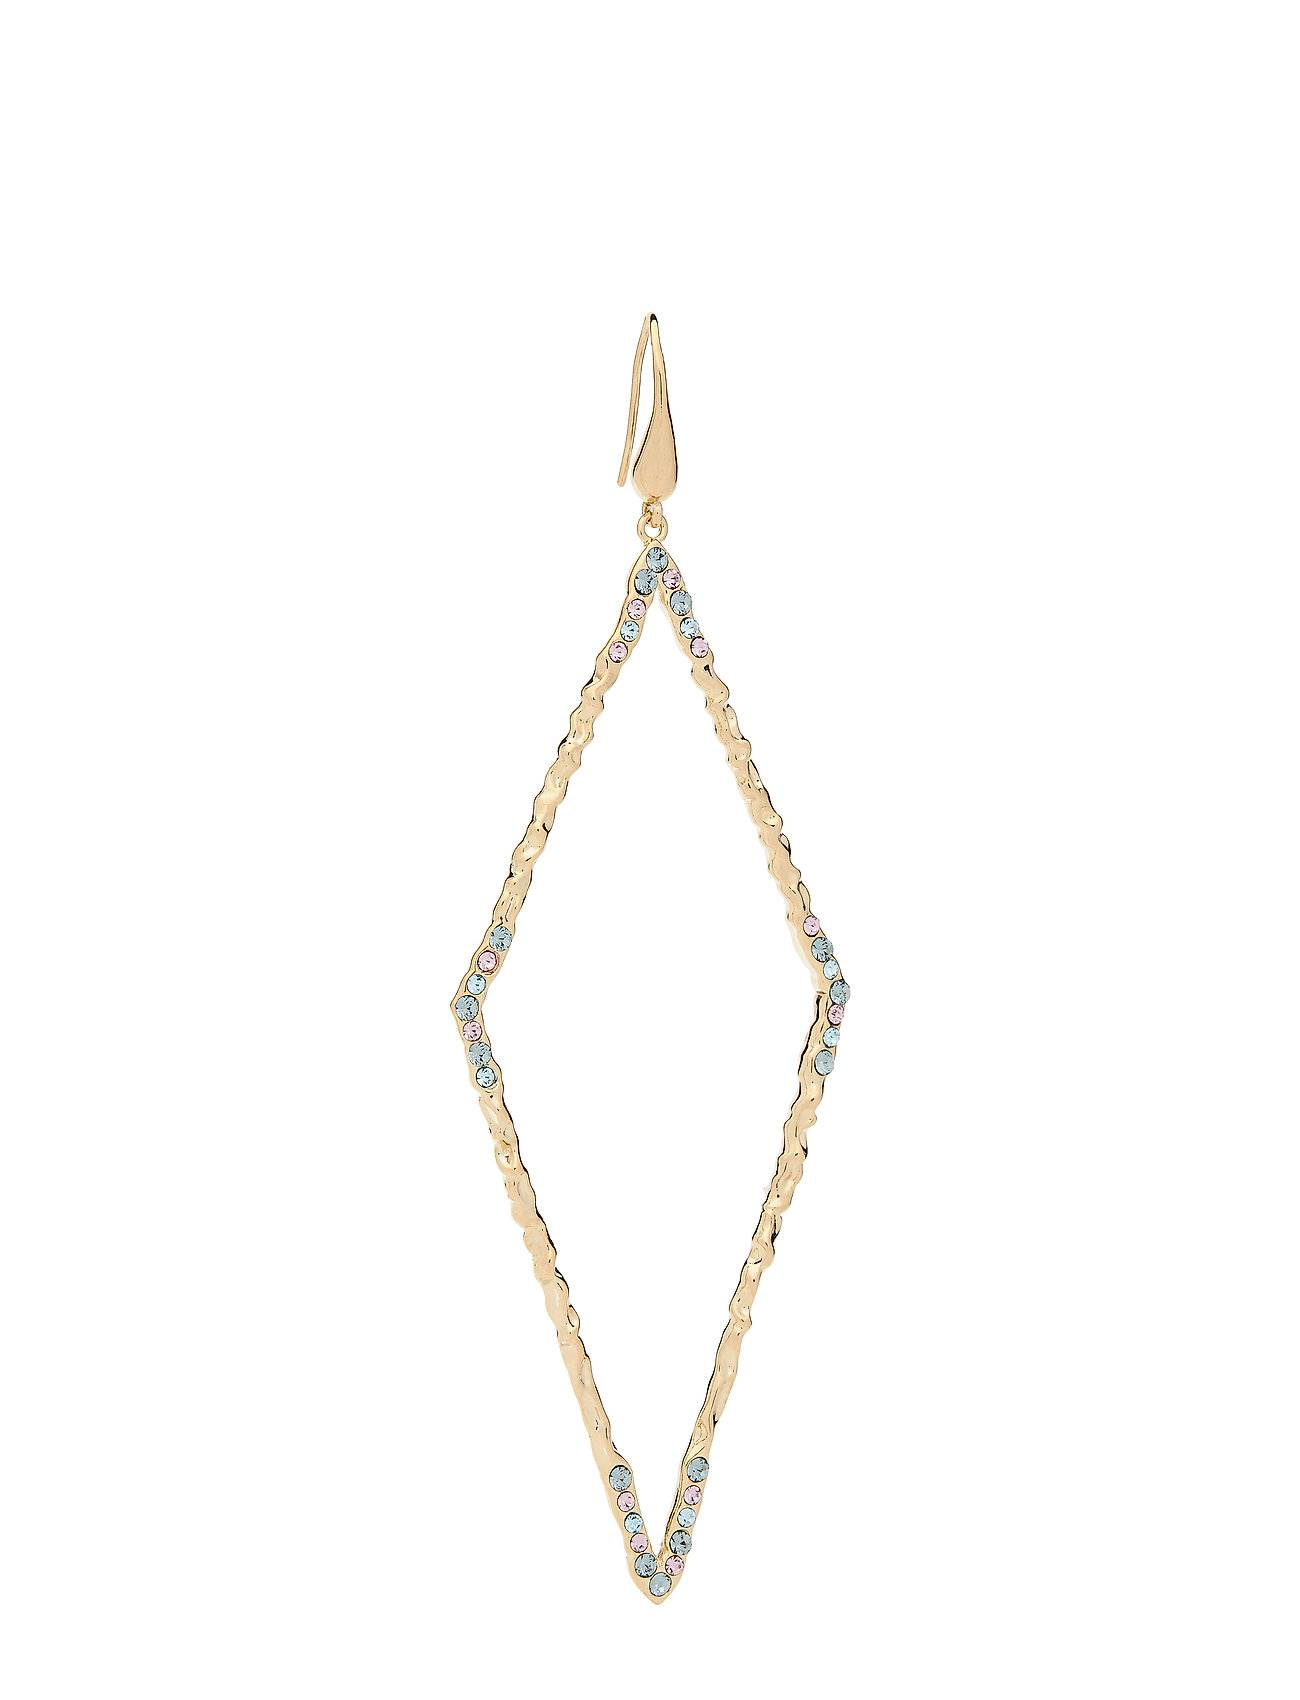 LILY AND ROSE Jagger Earrings - Indian Sapphire Accessories Jewellery Earrings Hoops Sininen LILY AND ROSE